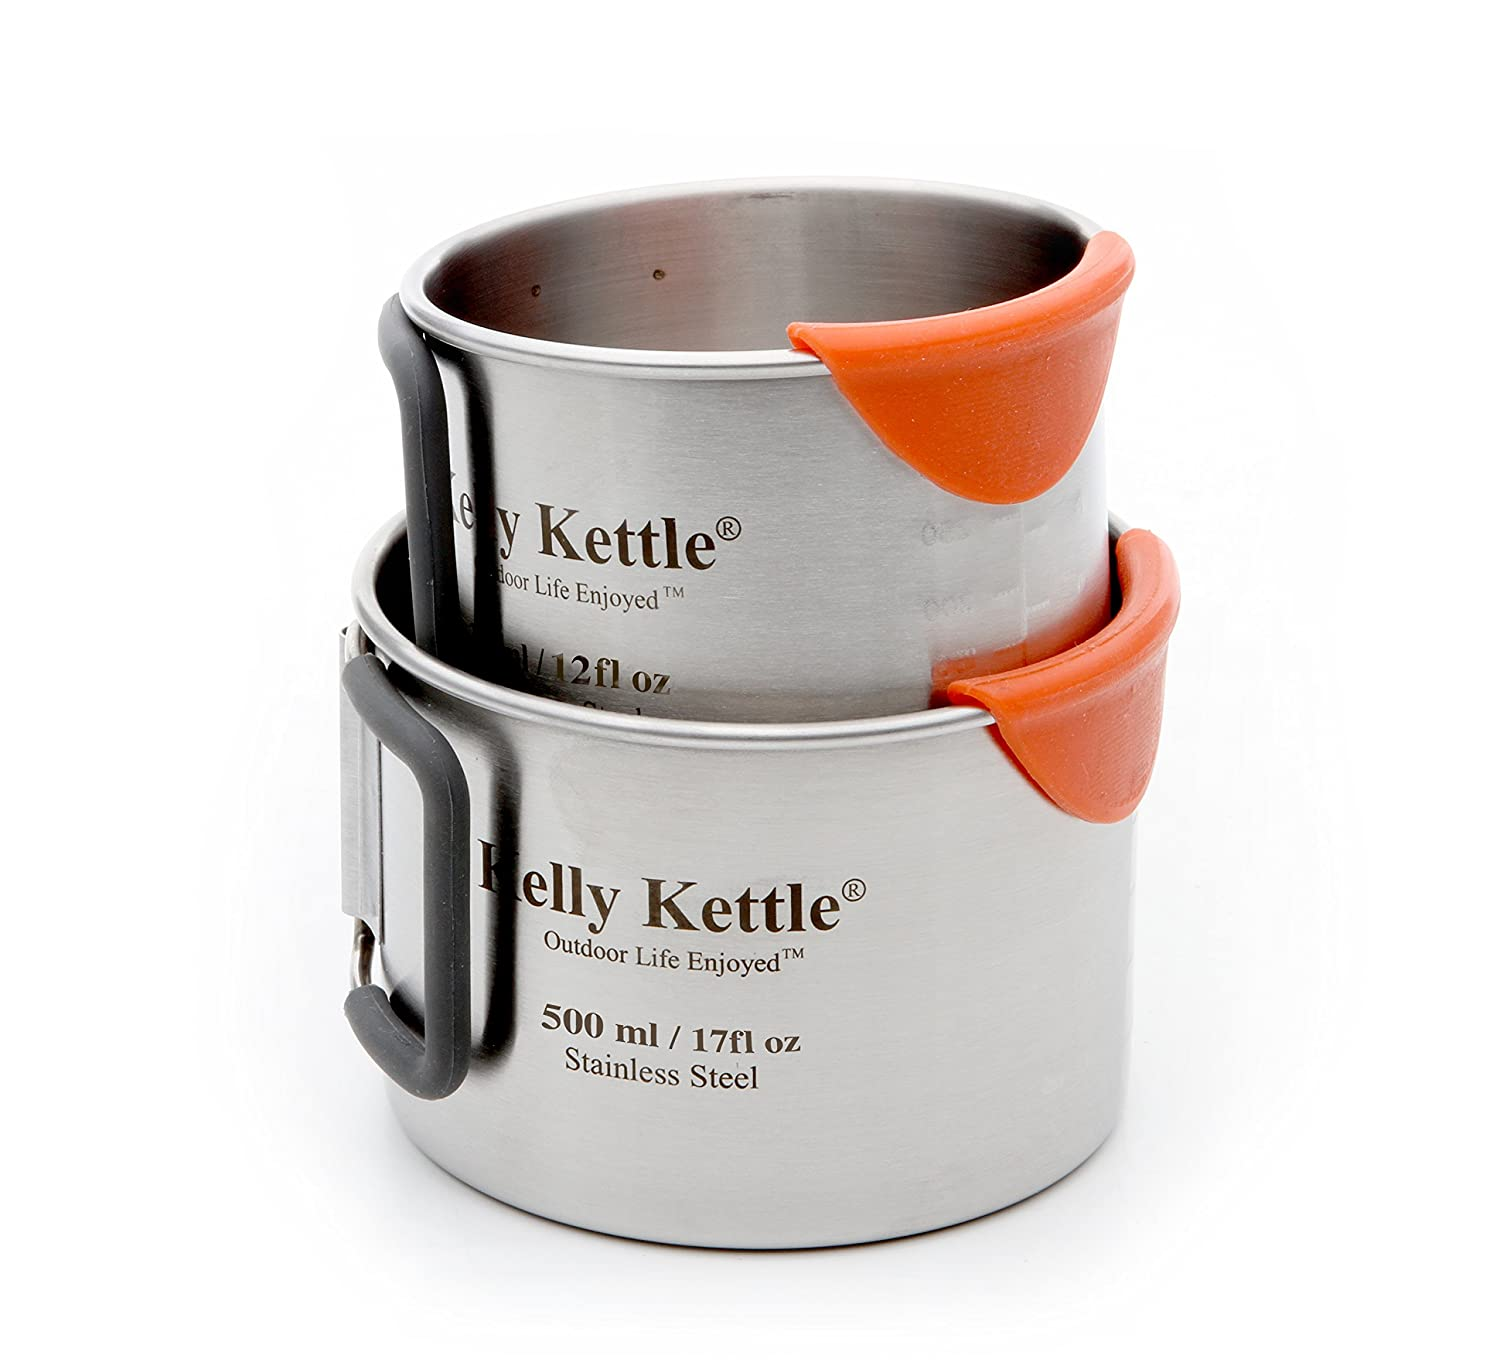 Camping Cup set (350 & 500ml) 2 x High quality single walled stainless steel Camping Cups. Features Include: Silicone coated foldable handles for comfort / CooLip™ feature to protect lips from burning / measurements on inside of cup / Polished interna